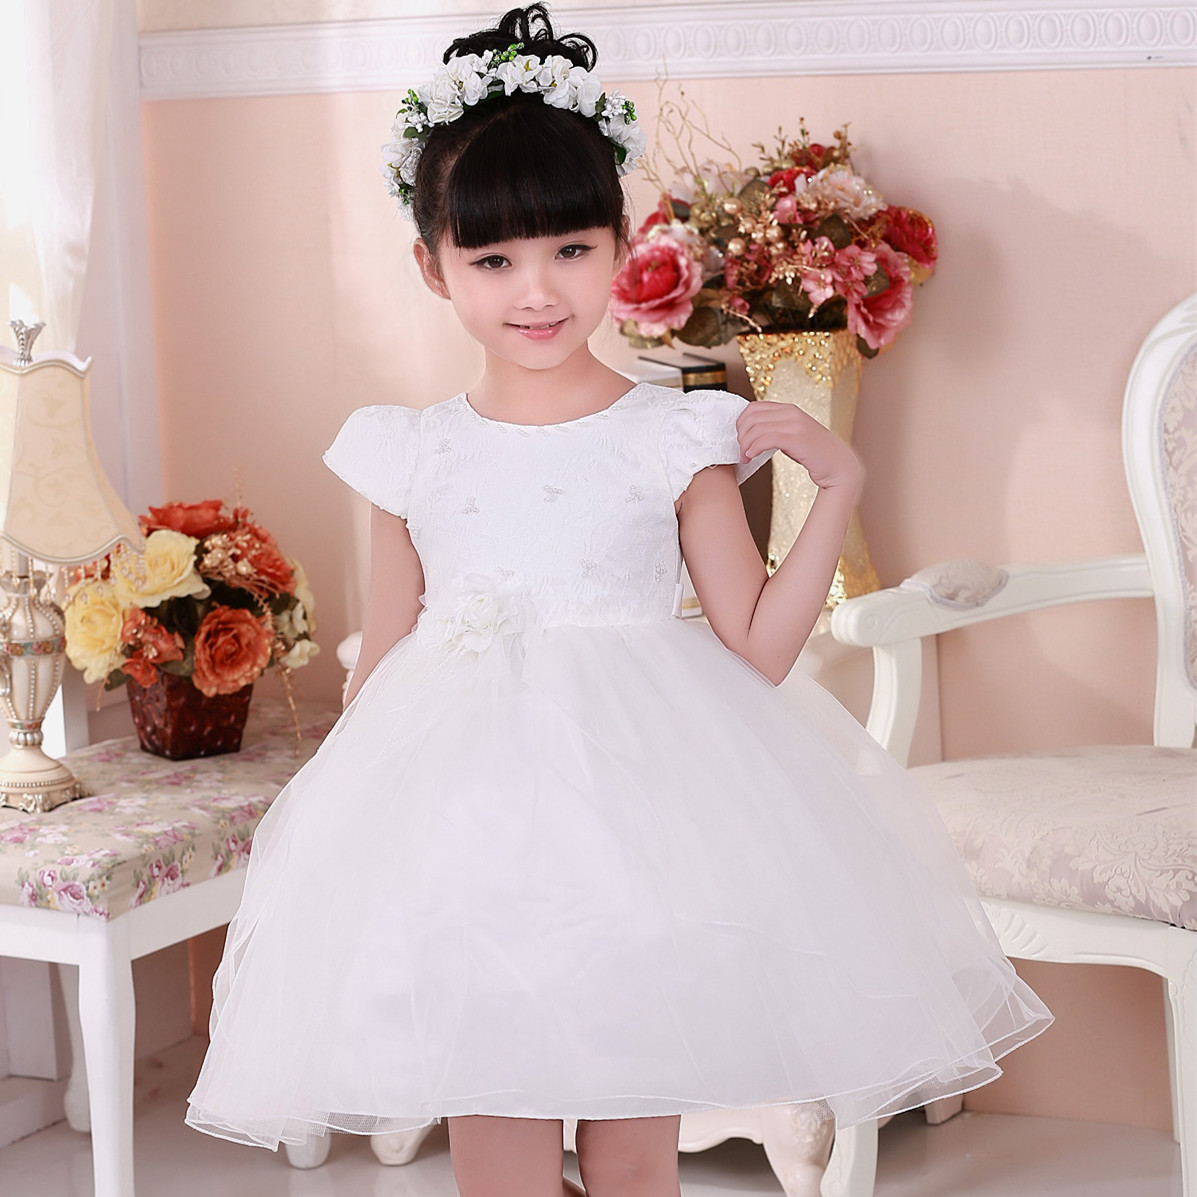 2017 Hot Latest Children Fancy Formal Girl Dress White Mini Ball Gown Formal Girls Clothes For 2 3 4 6 8 10 Years Old KD-1459 longoni fancy hot lips 4